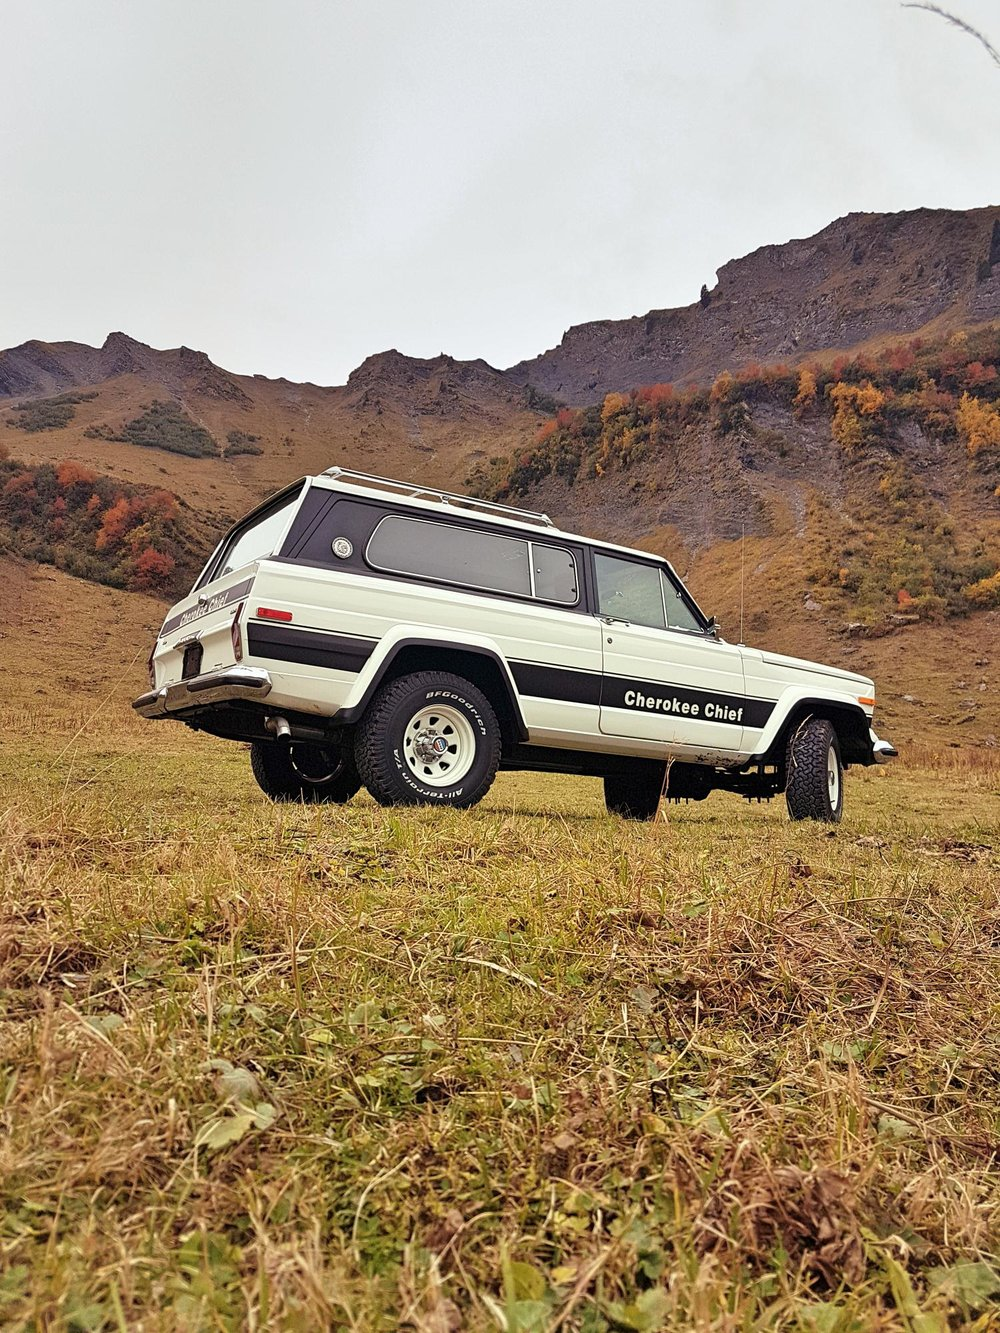 jeep-cherokee-chief-1978-shooting-morgins-switzerland-57.jpg